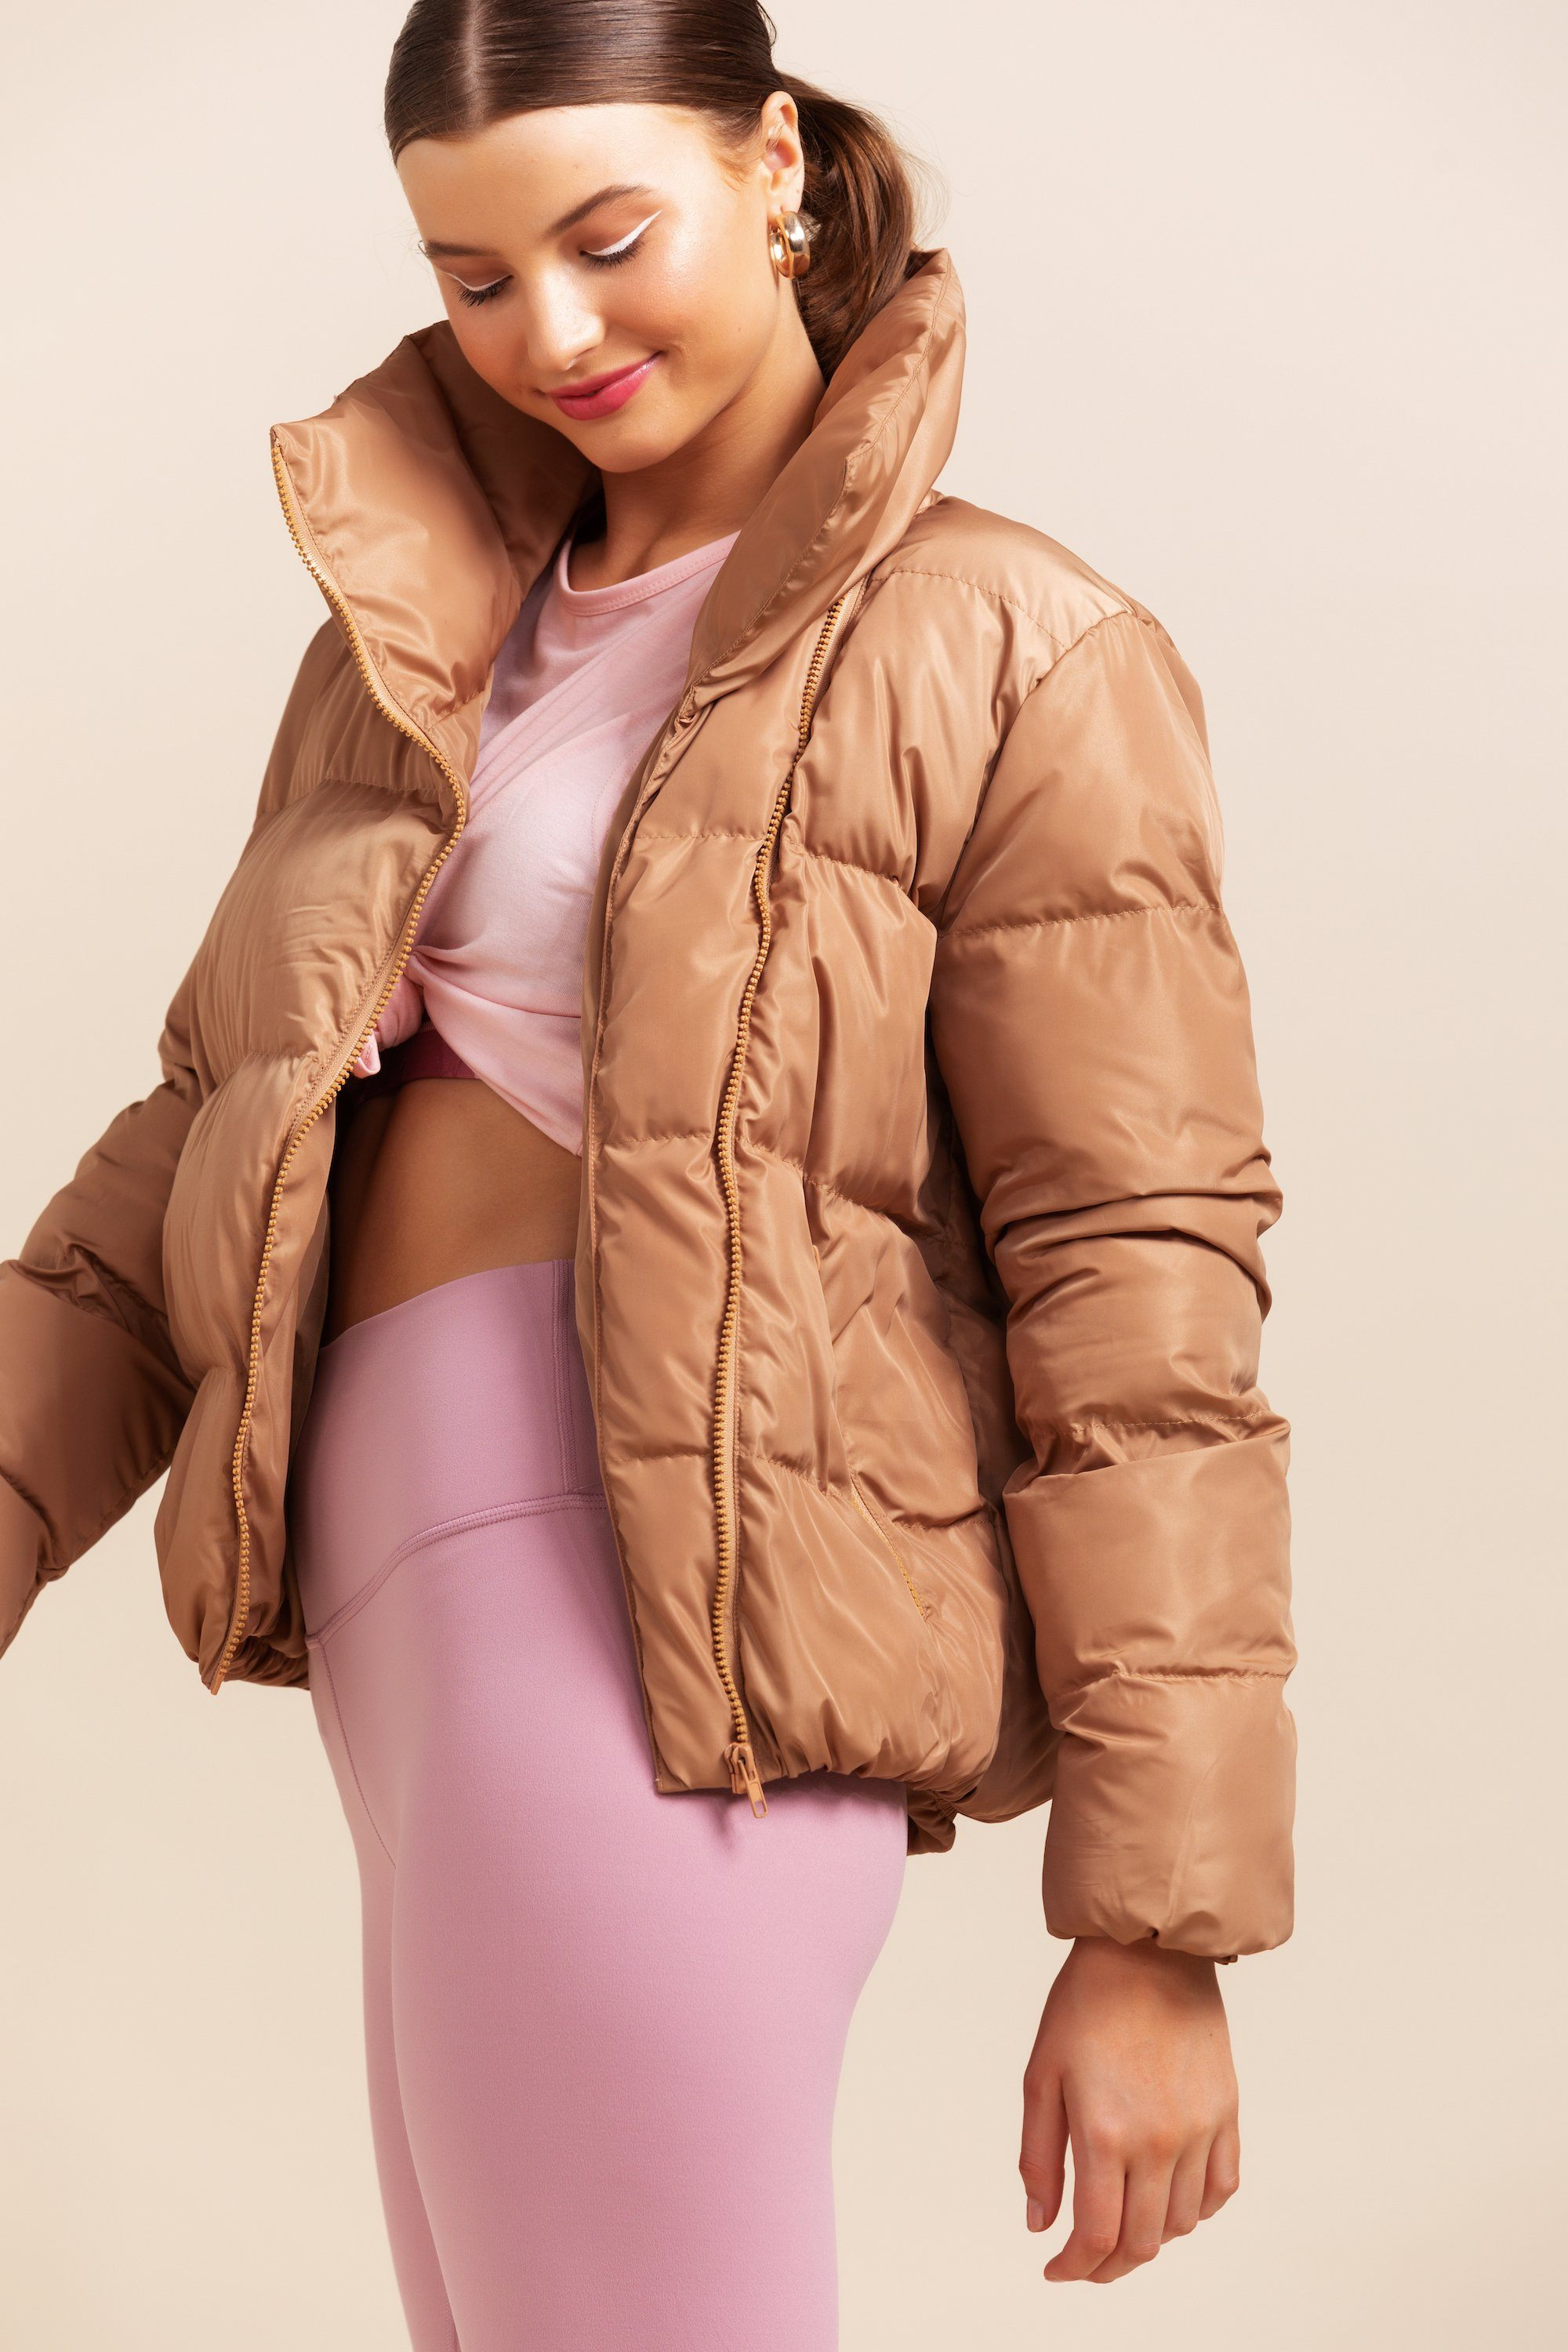 Jupiter Puffer Jacket - Cinnamon  *SOLD OUT